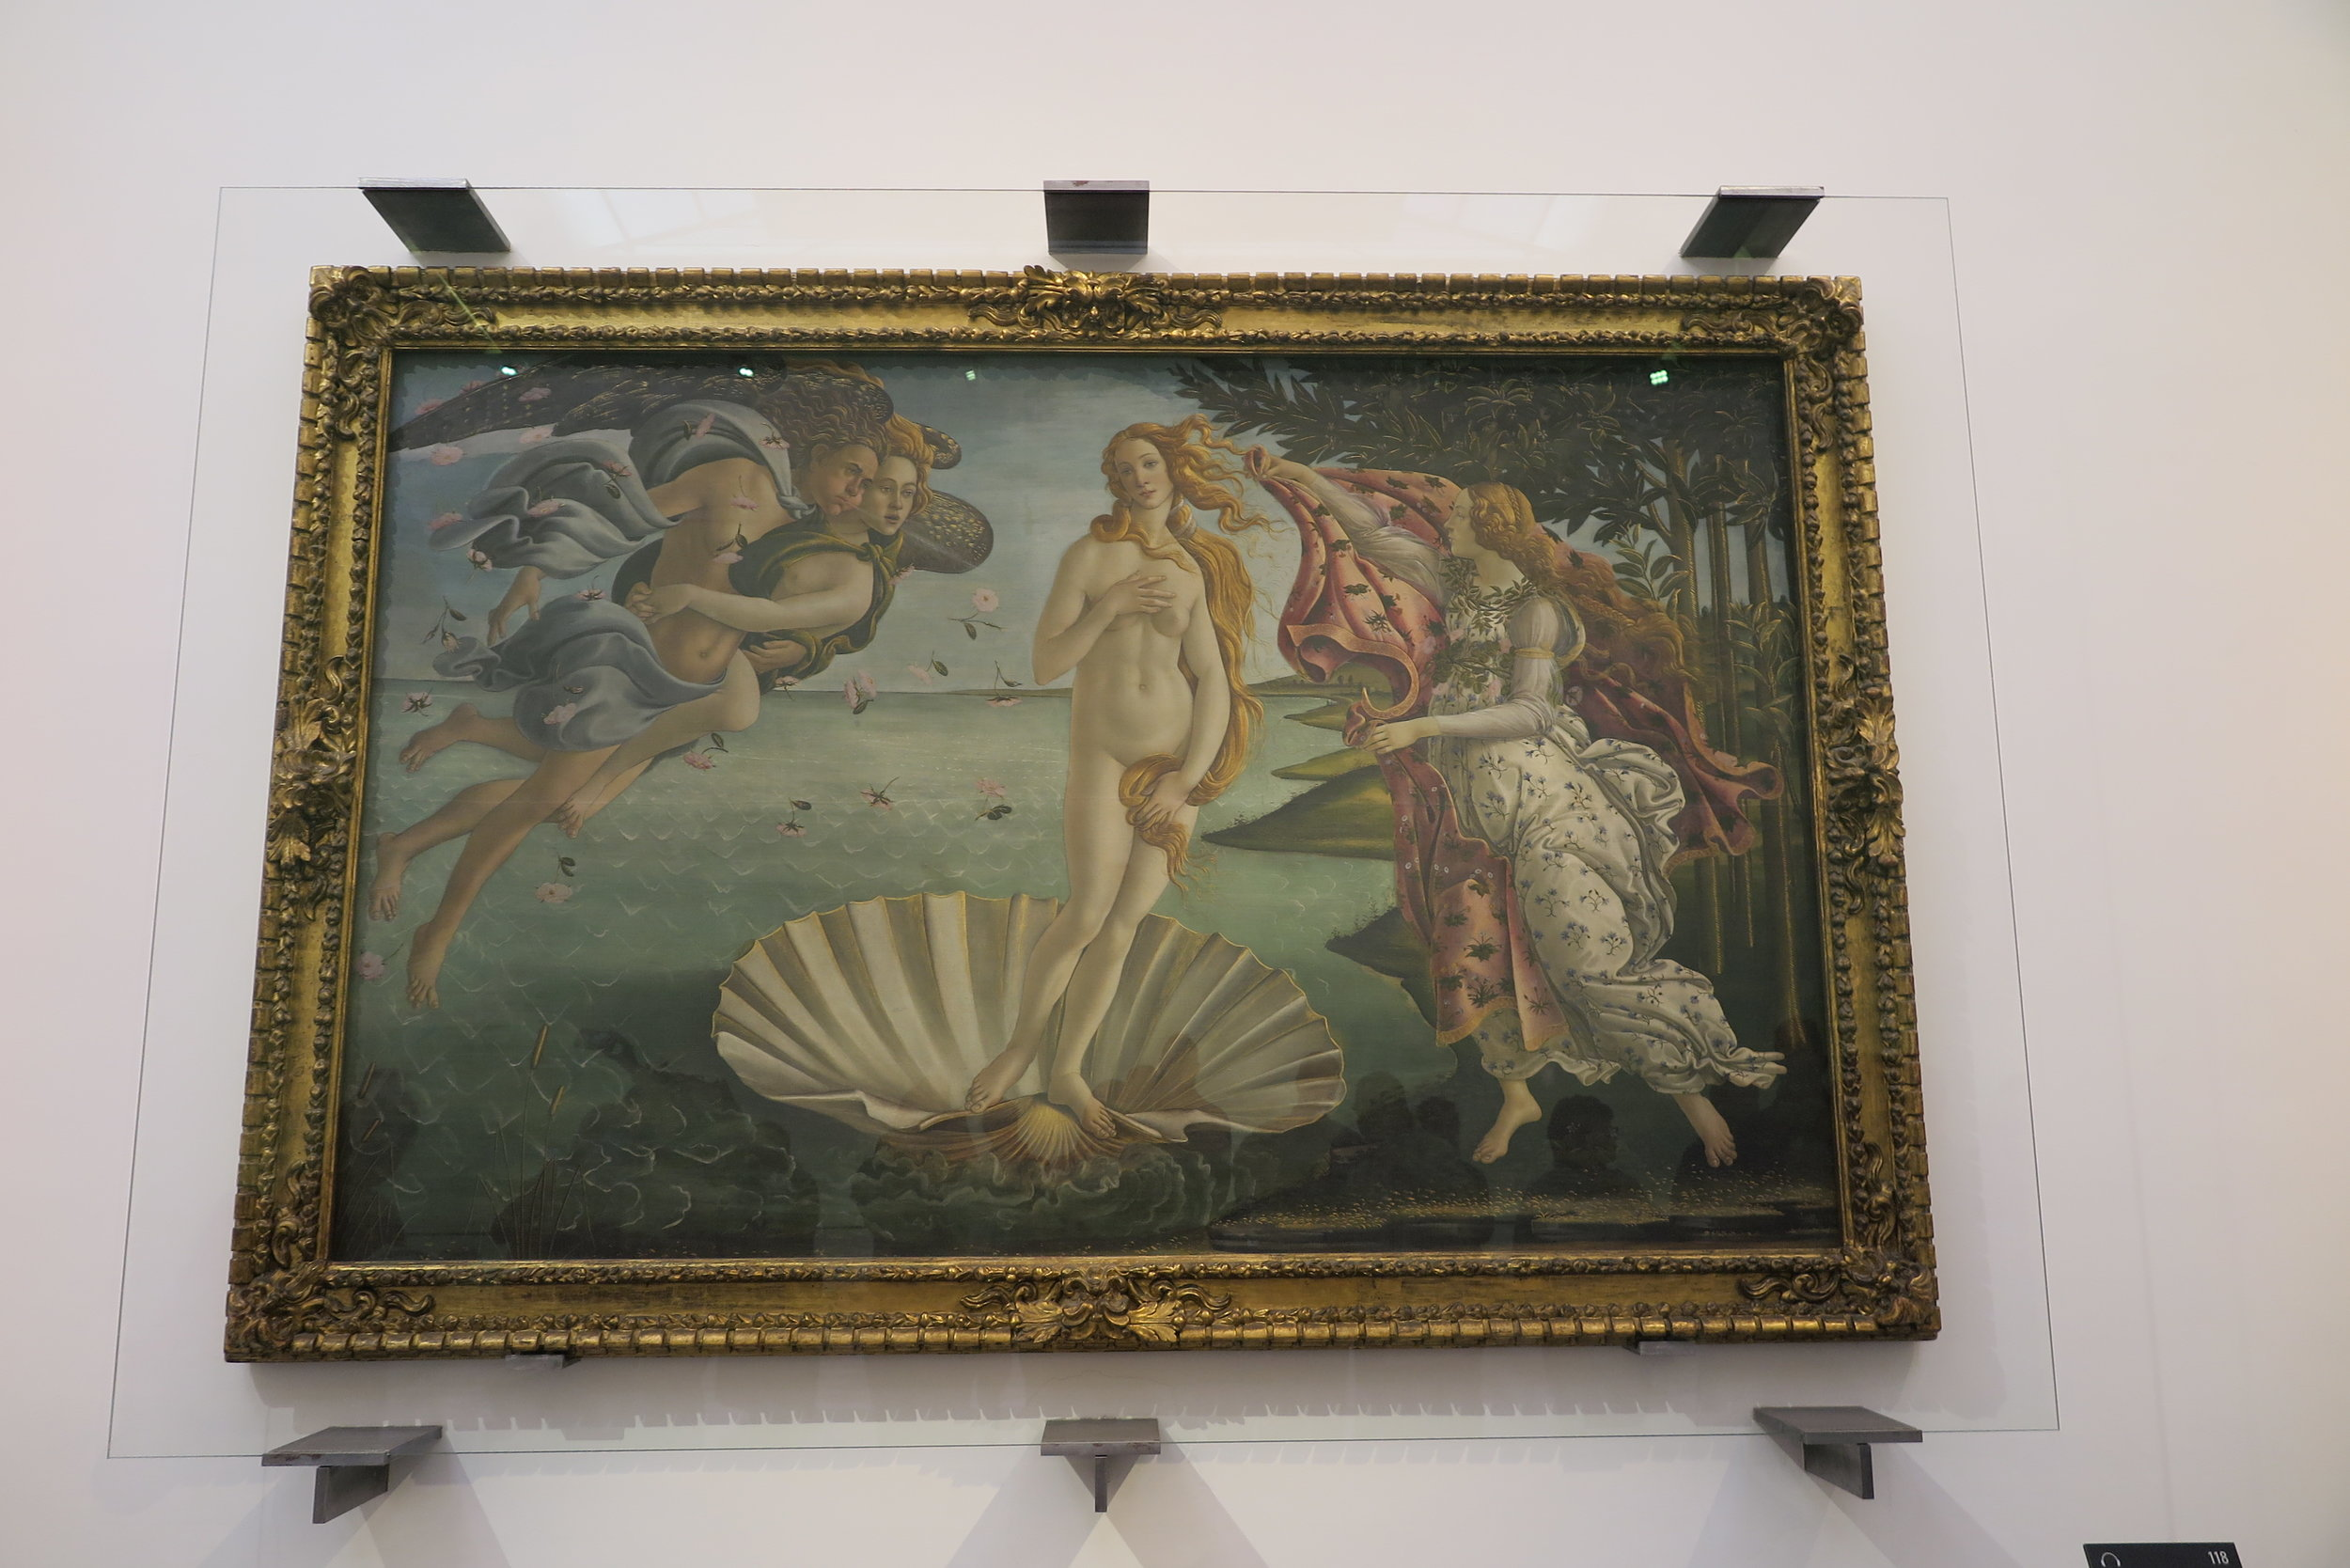 Samantha McNeil Blog - Birth of Venus at the Uffizi Gallery in Florence